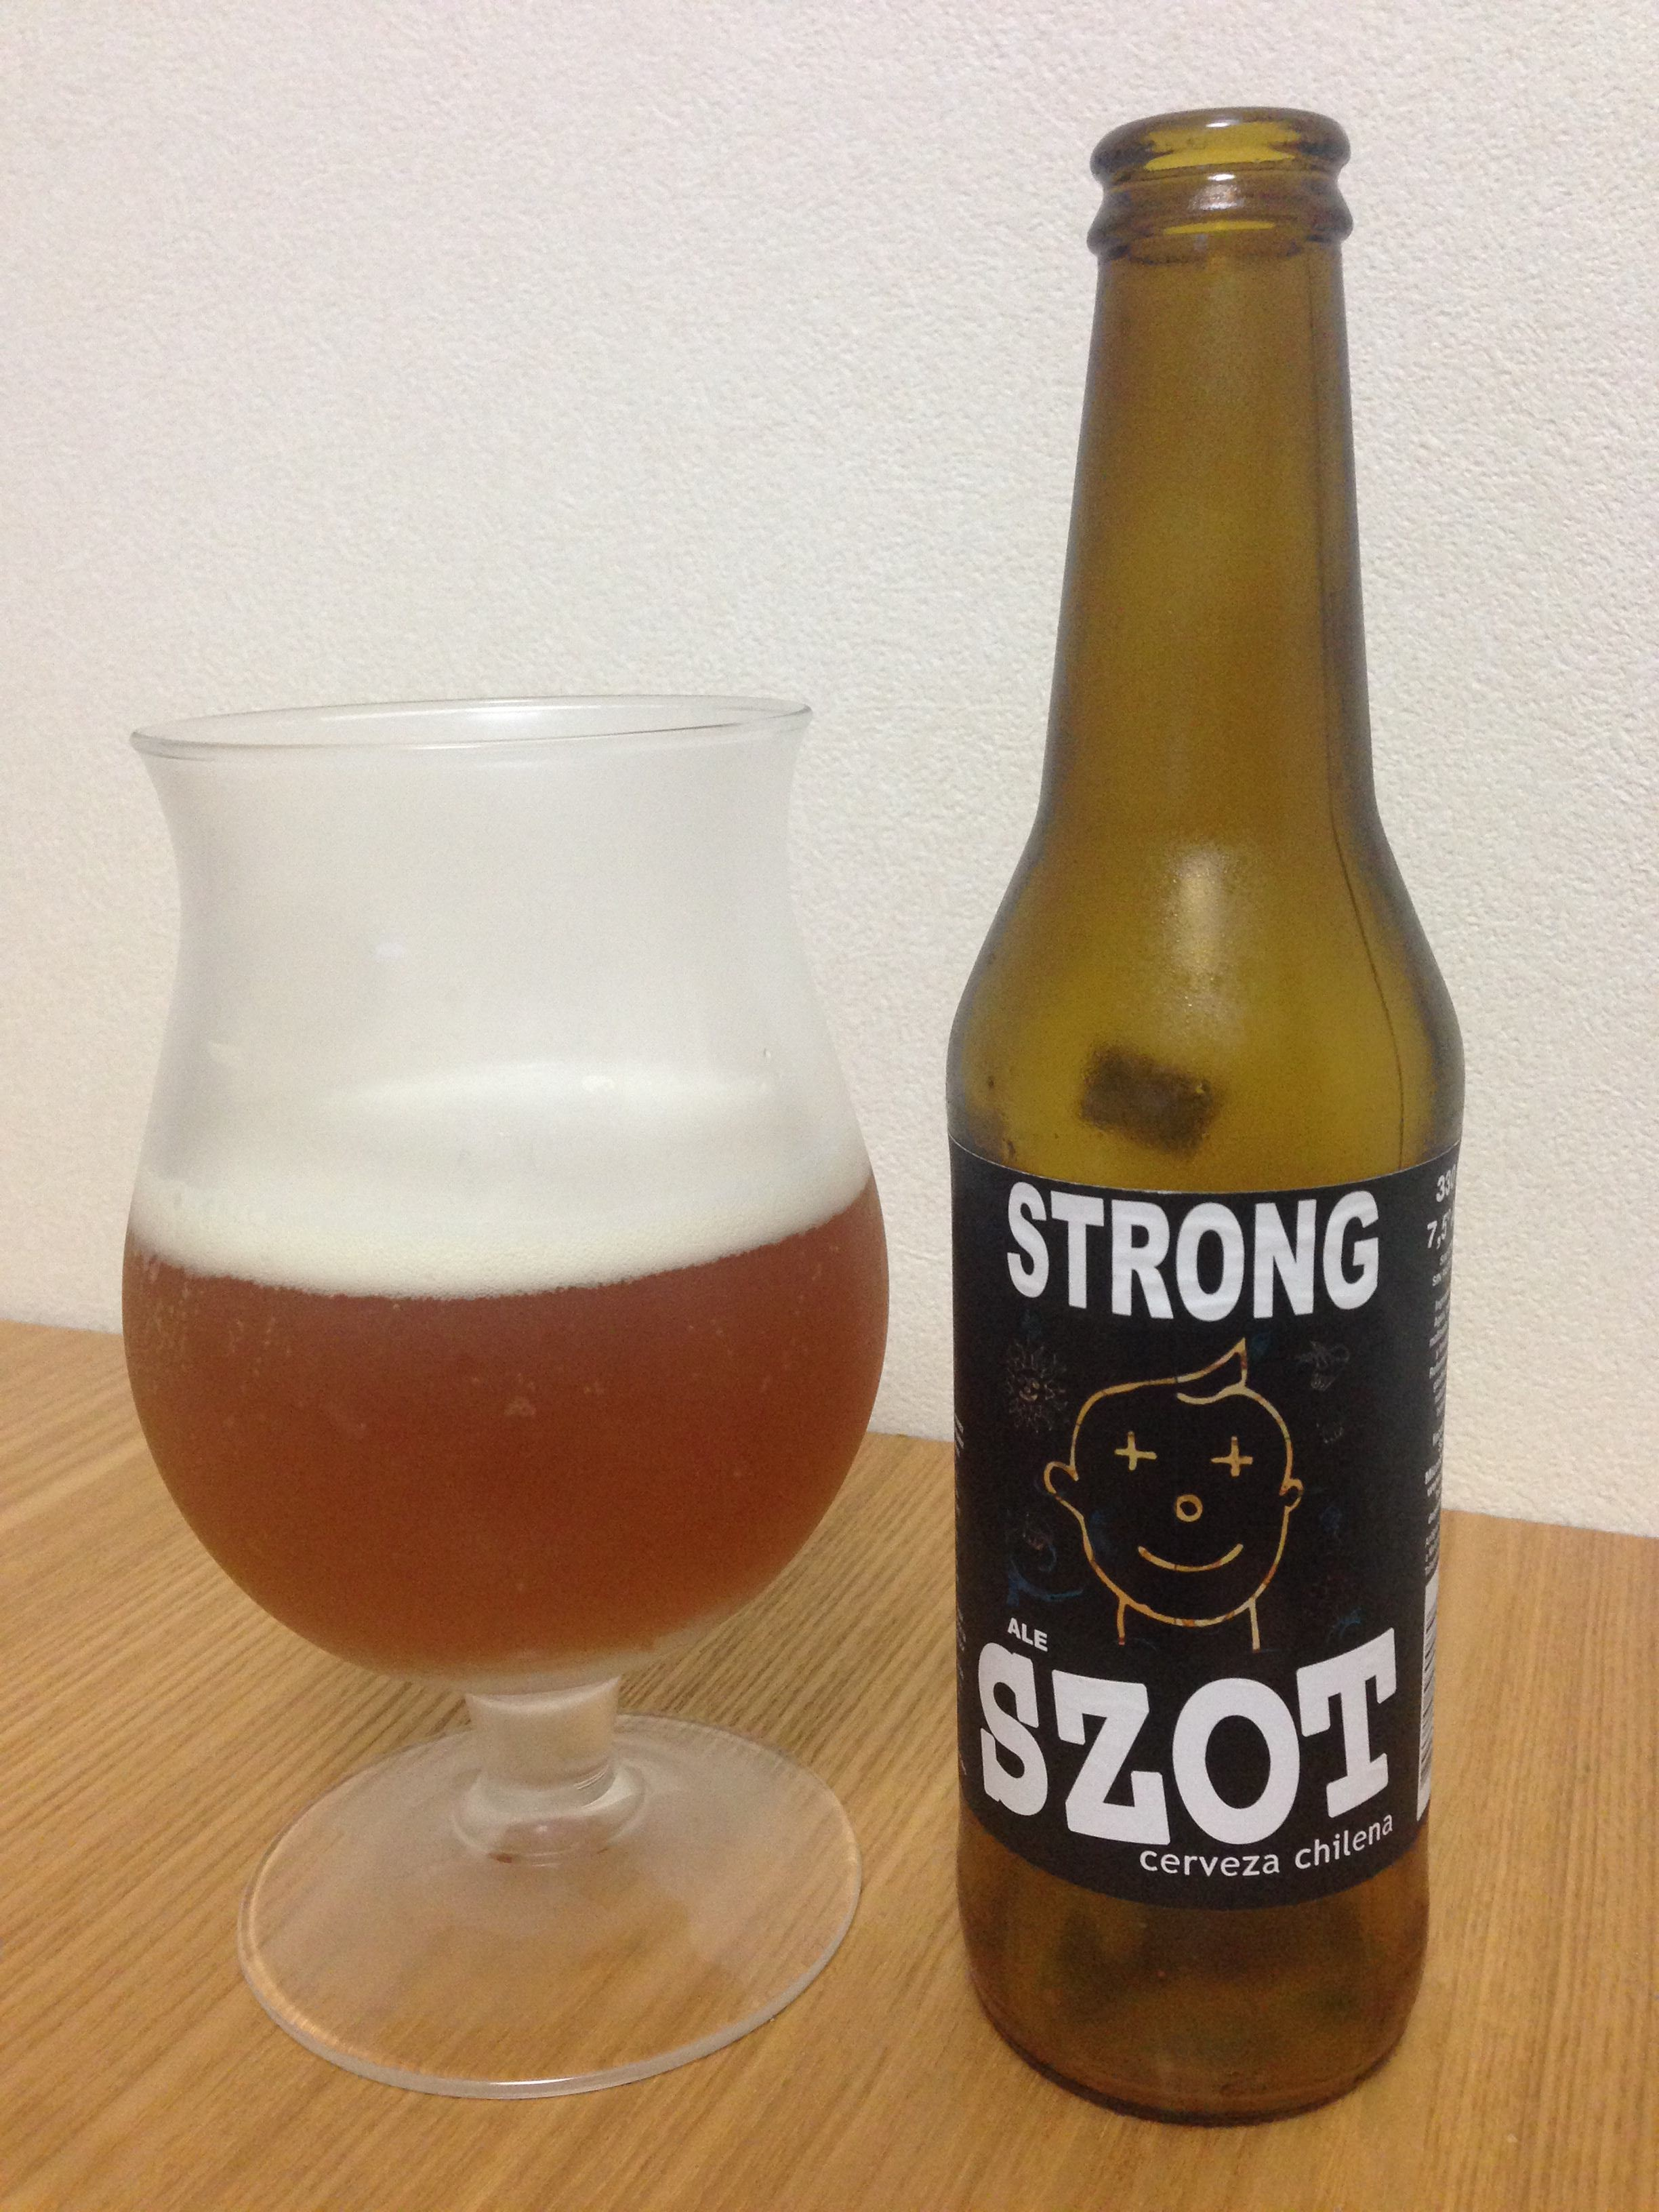 SZOT STRONG ALE(ソット ストロングエール)